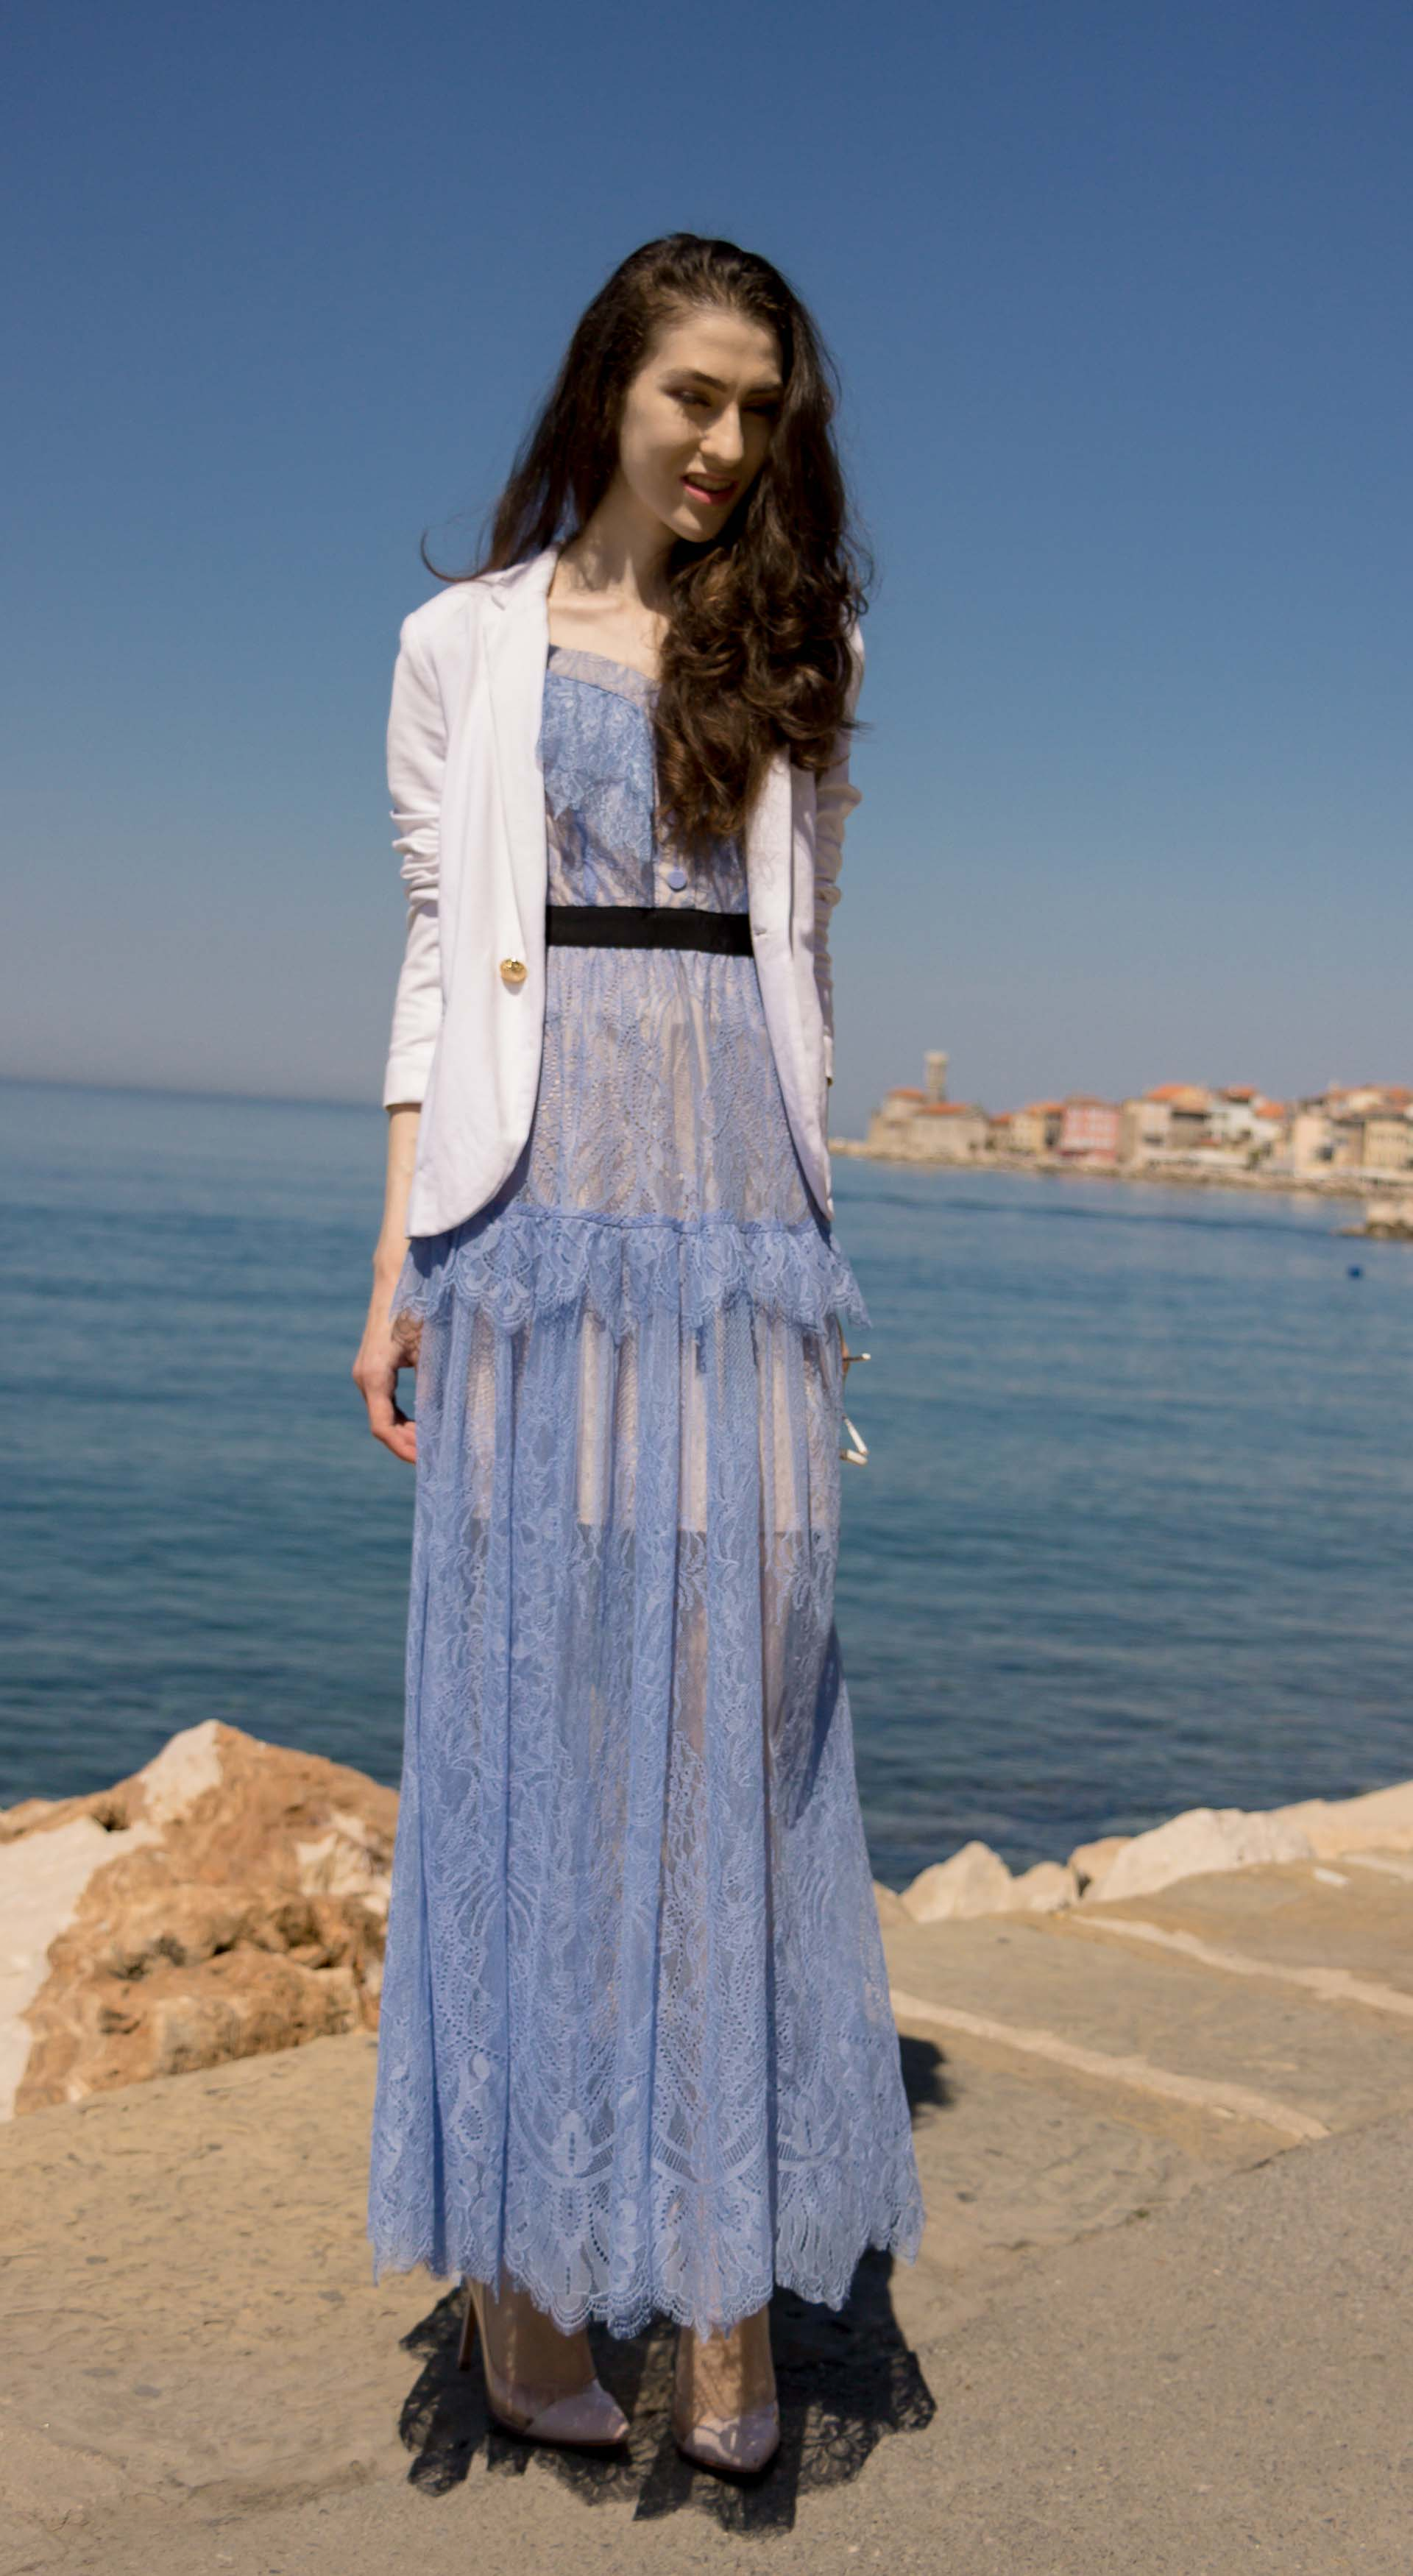 Veronika Lipar Fashion Blogger of Brunette from Wall Street dressed in Self-Portrait blue lace midi dress, white single button blazer, blush Gianvito Rossi plexi pumps, white shoulder bag, Lespecs white cat eye sunglasses for a wedding by the sea